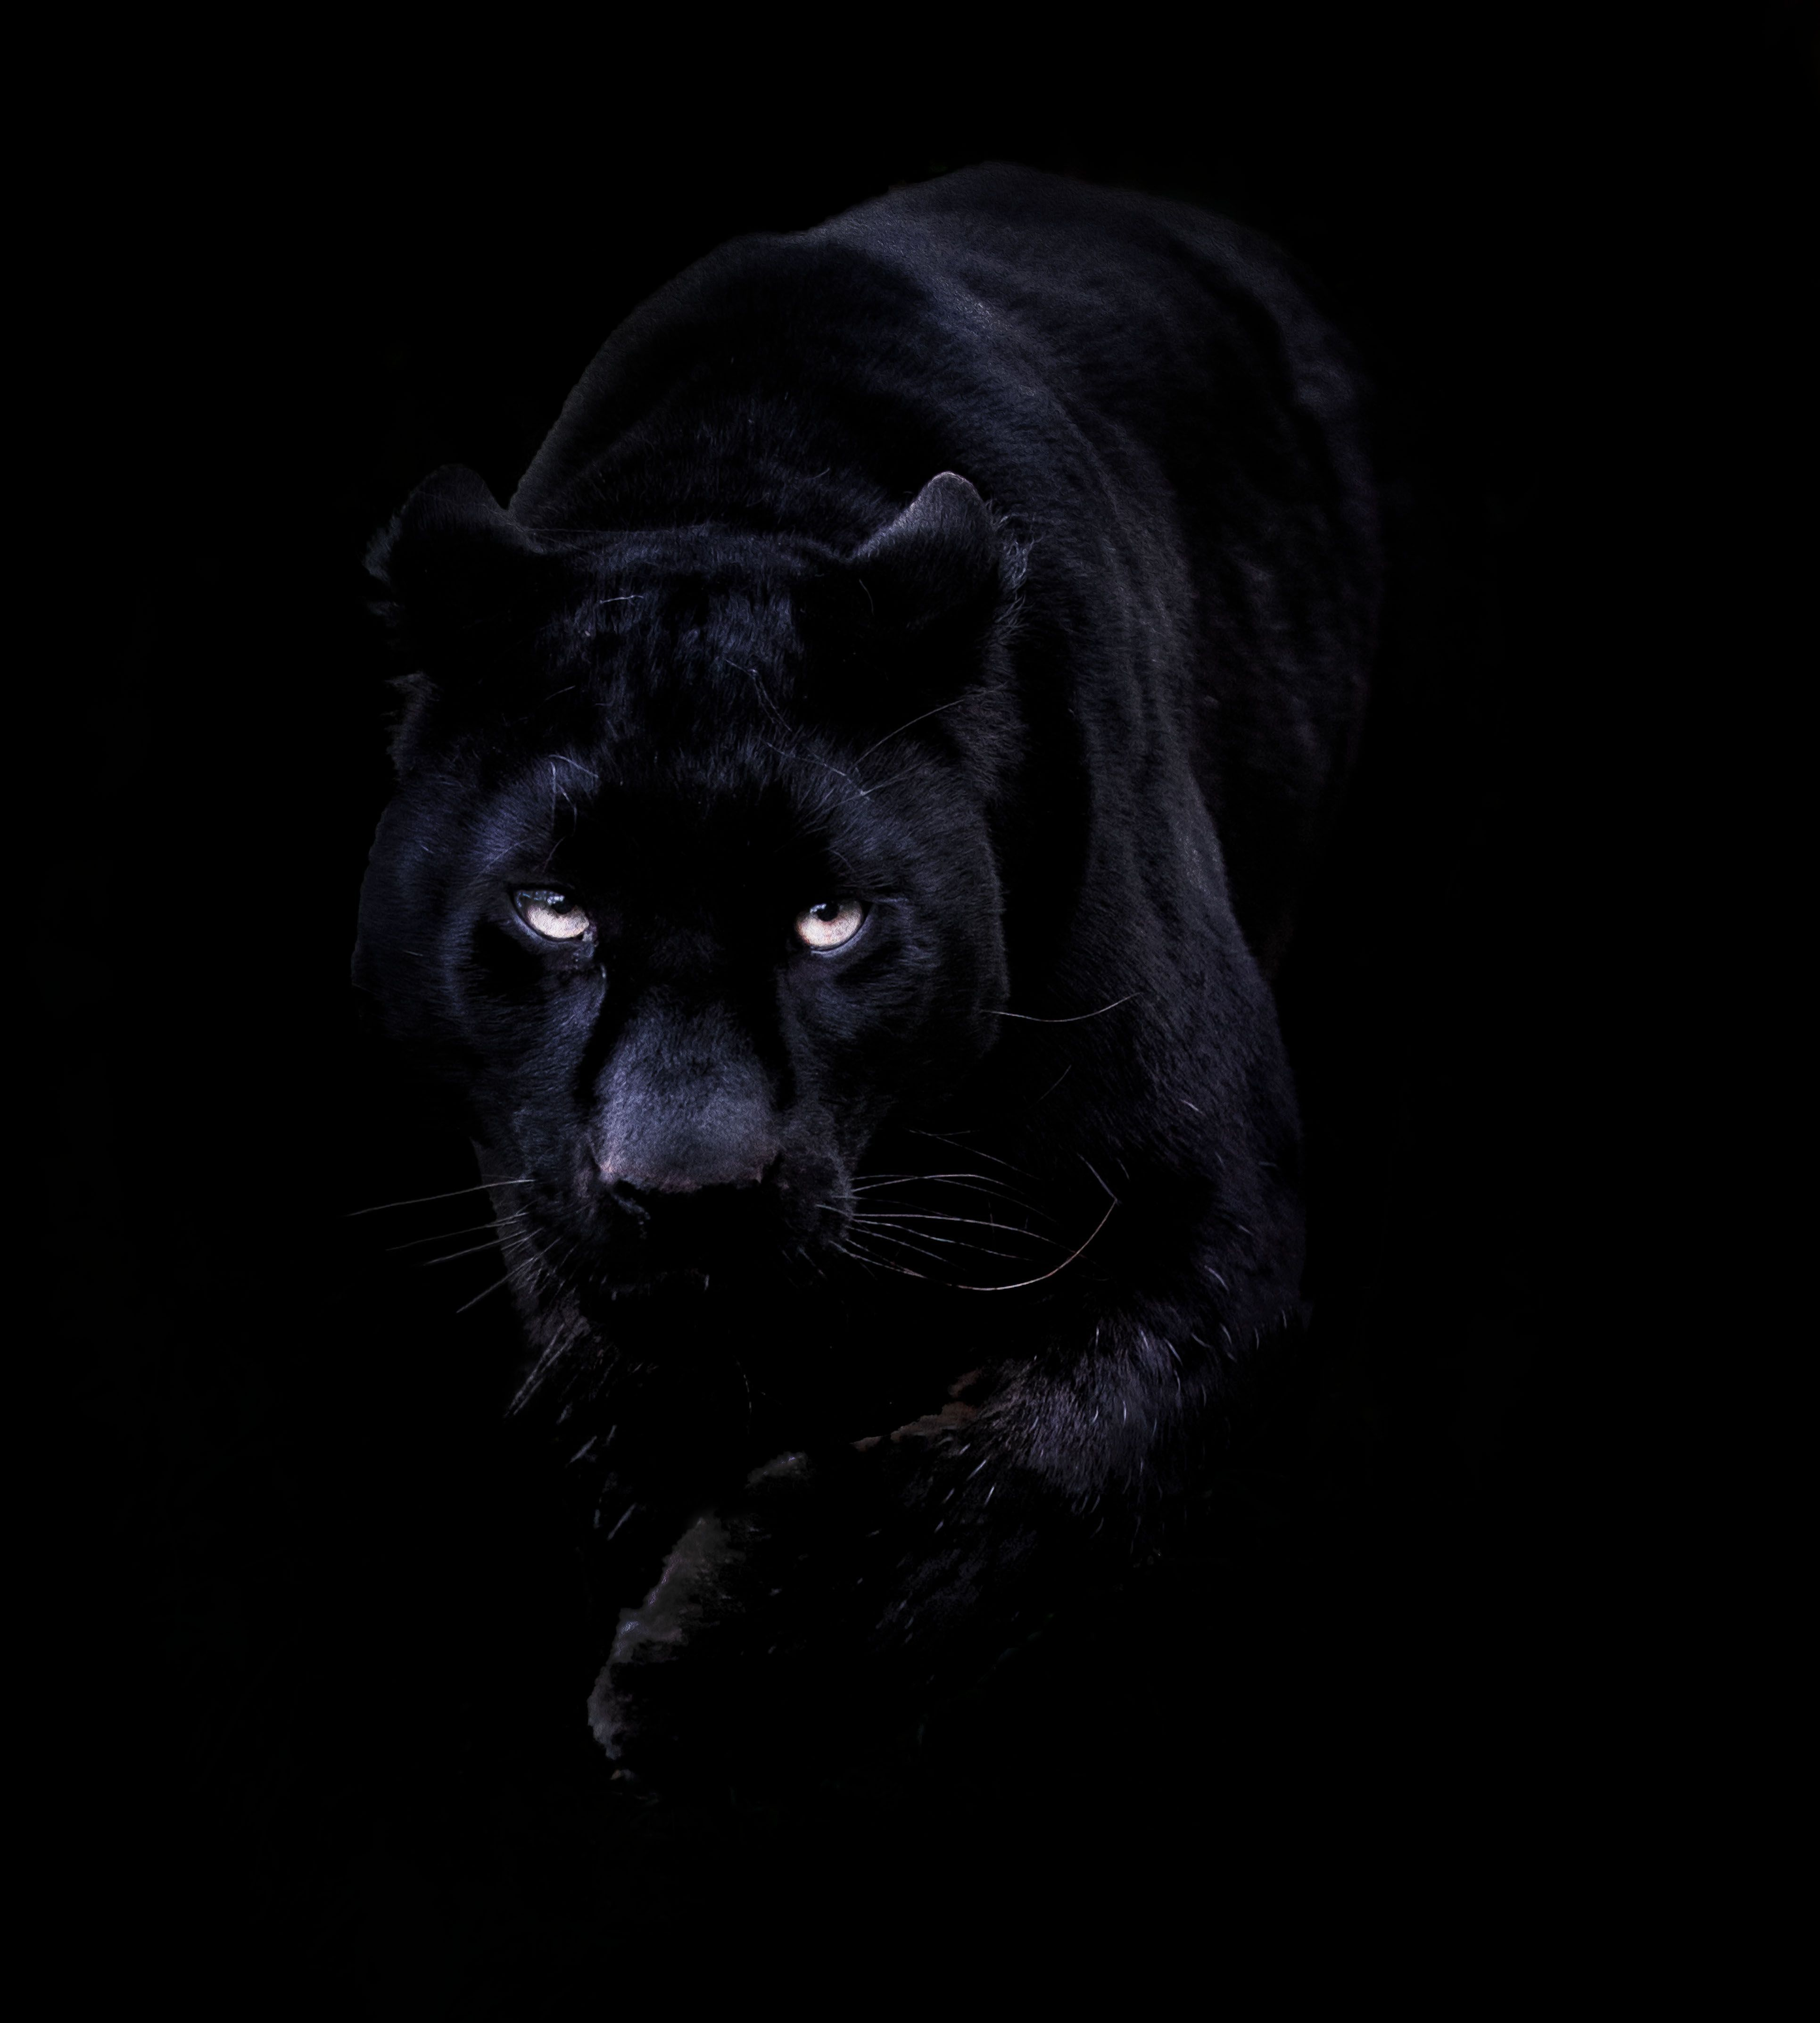 big black wallpapers group backgrounds windows black panther big cats wallpaper full hd black panther wallpapers full hd wallpaper search wild life and